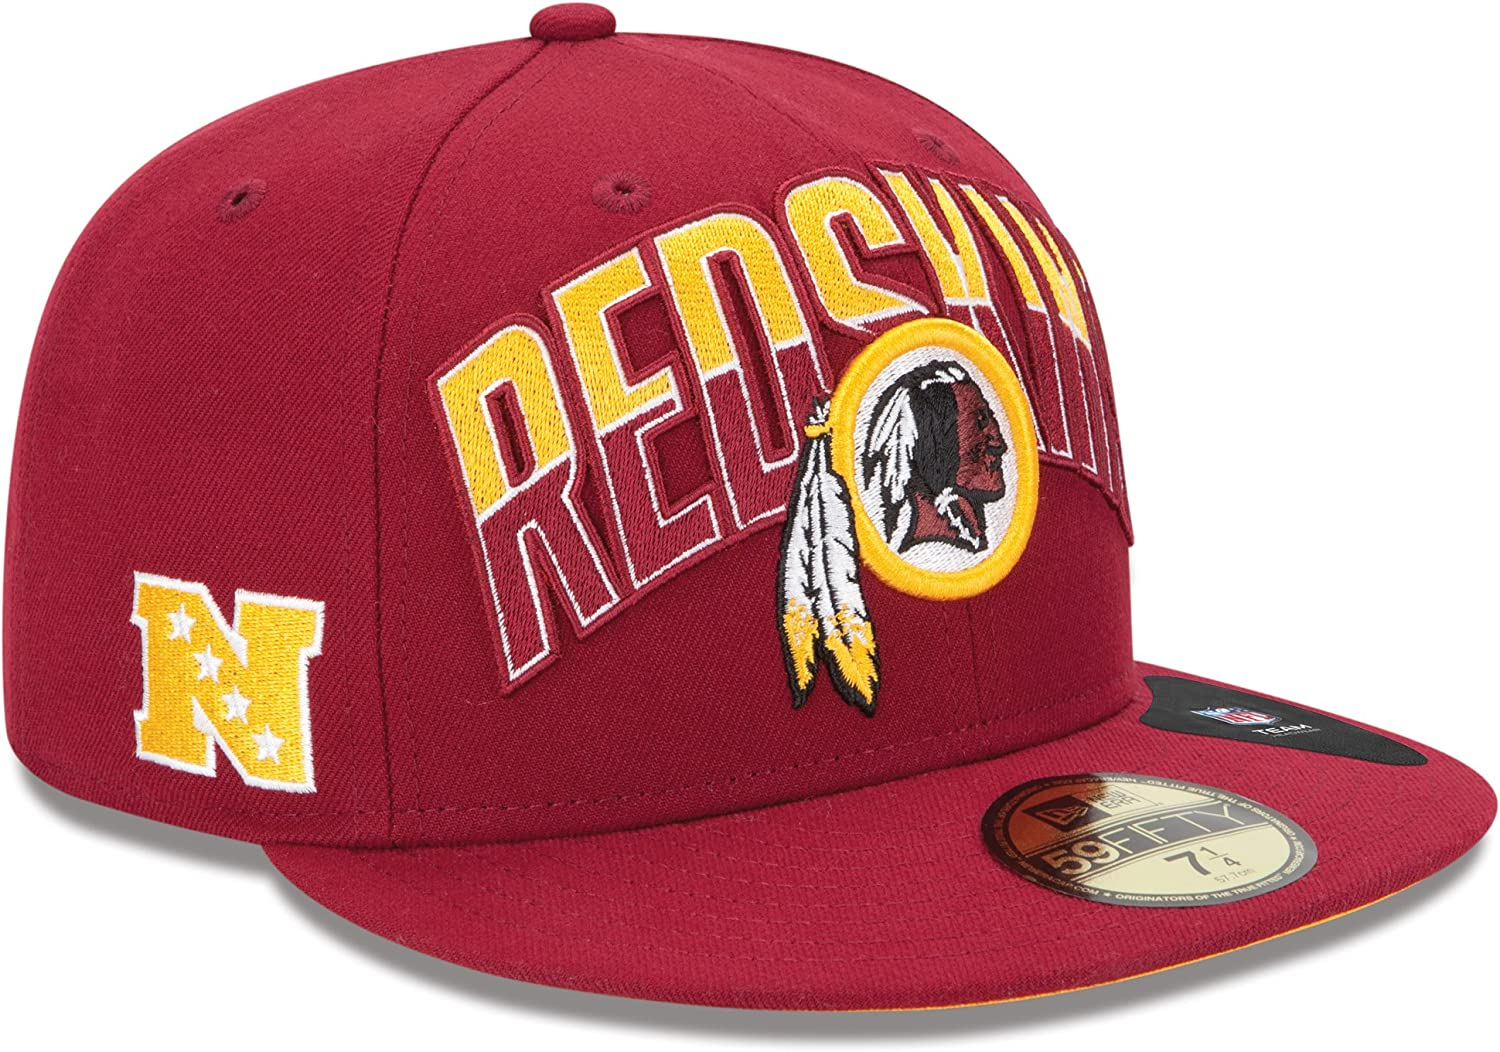 NFL Washington Redskins Kids 2013 Draft 59FIFTY Fitted Cap